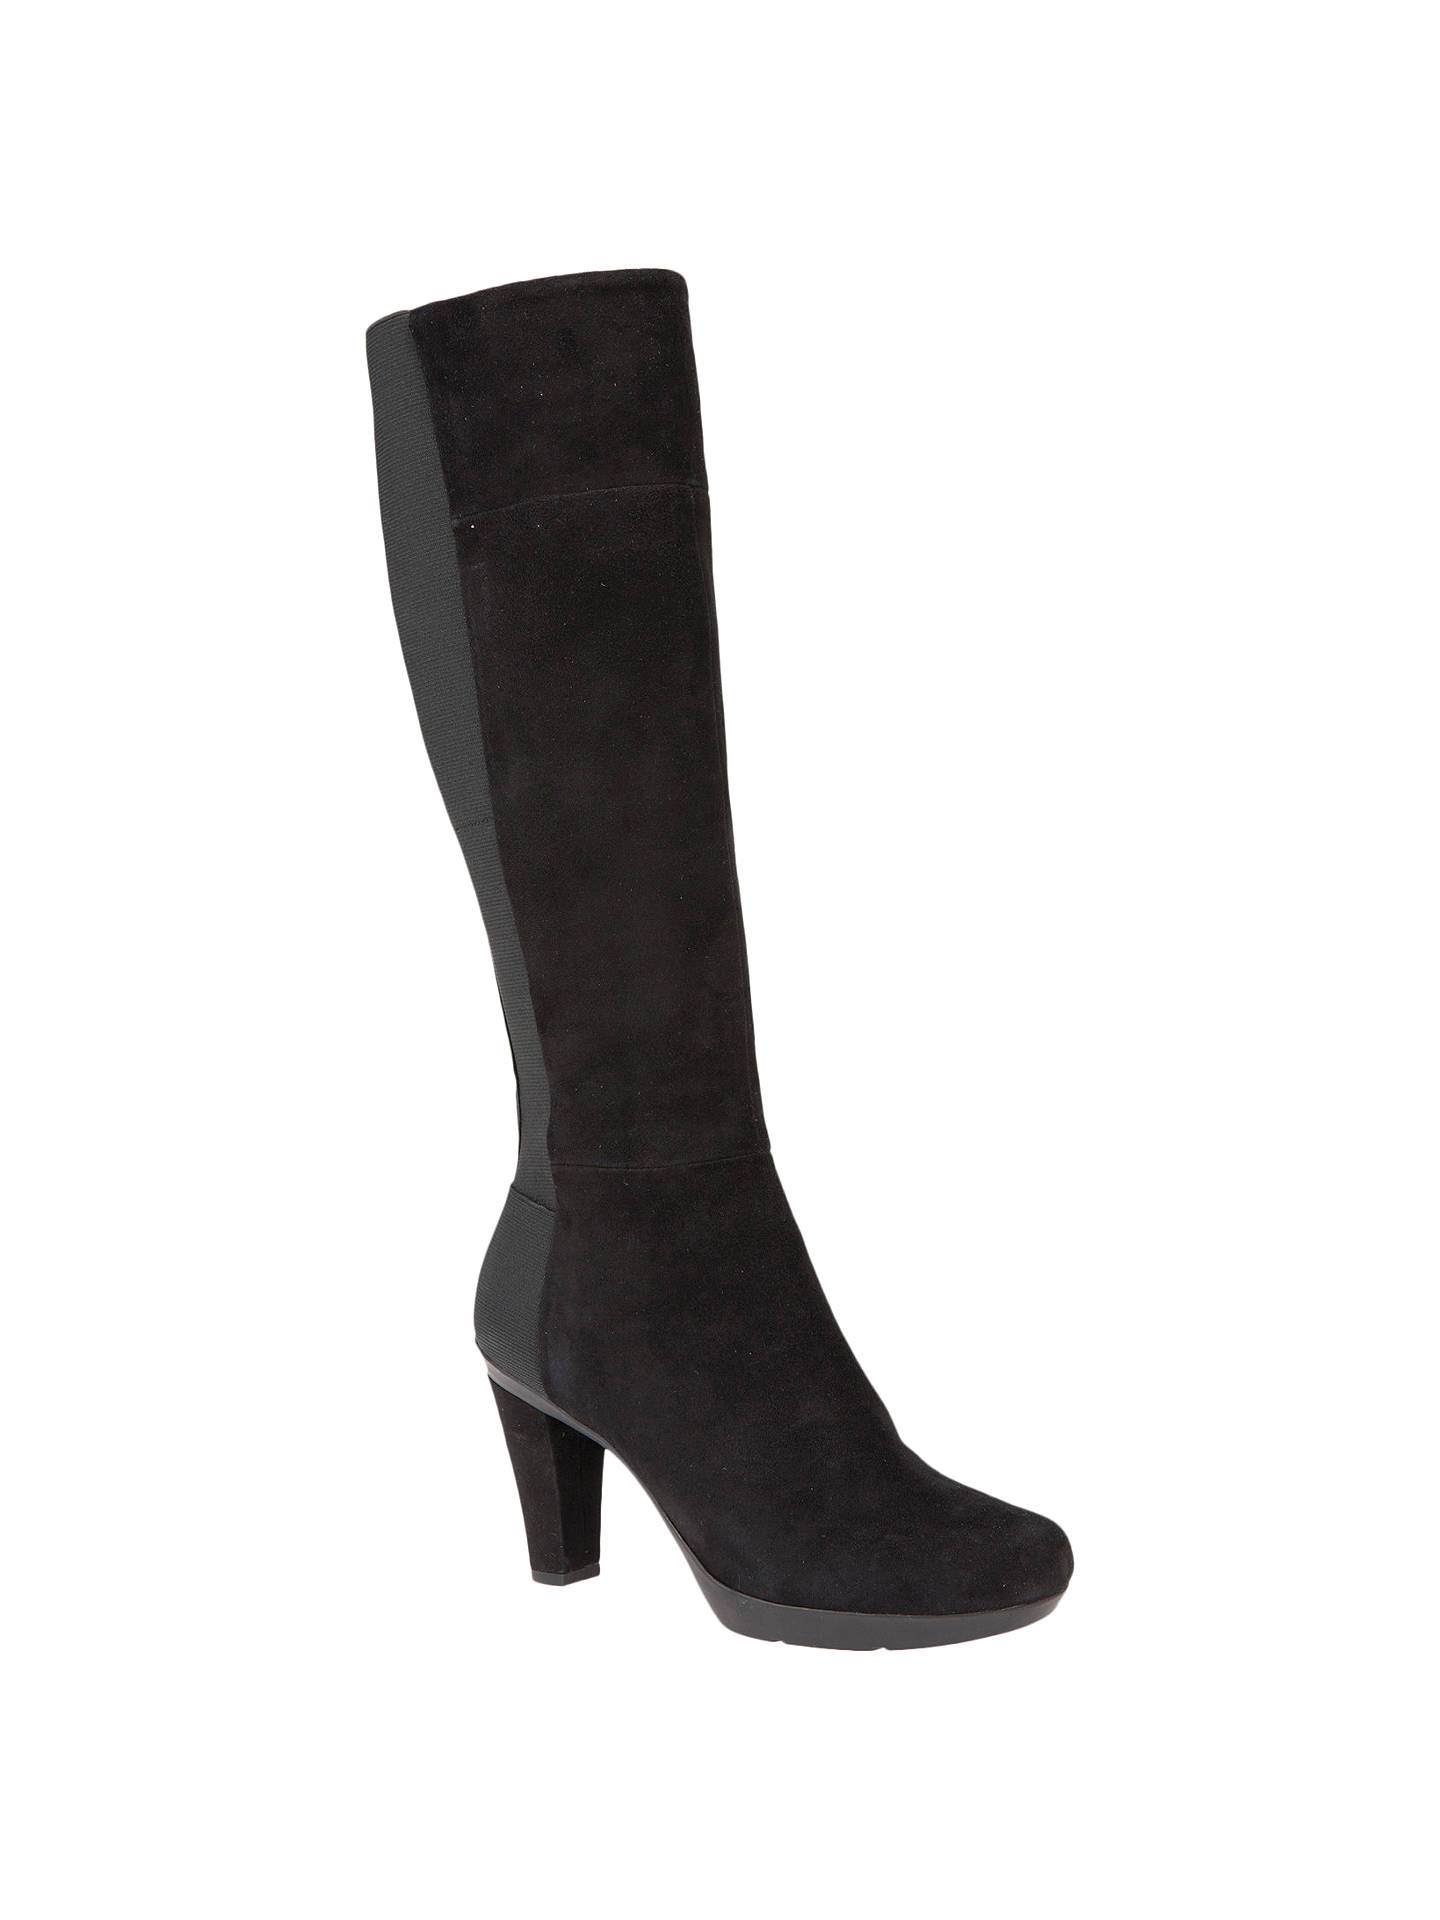 a6667935f4c Buy Geox Inspiration Block Heeled Knee High Boots